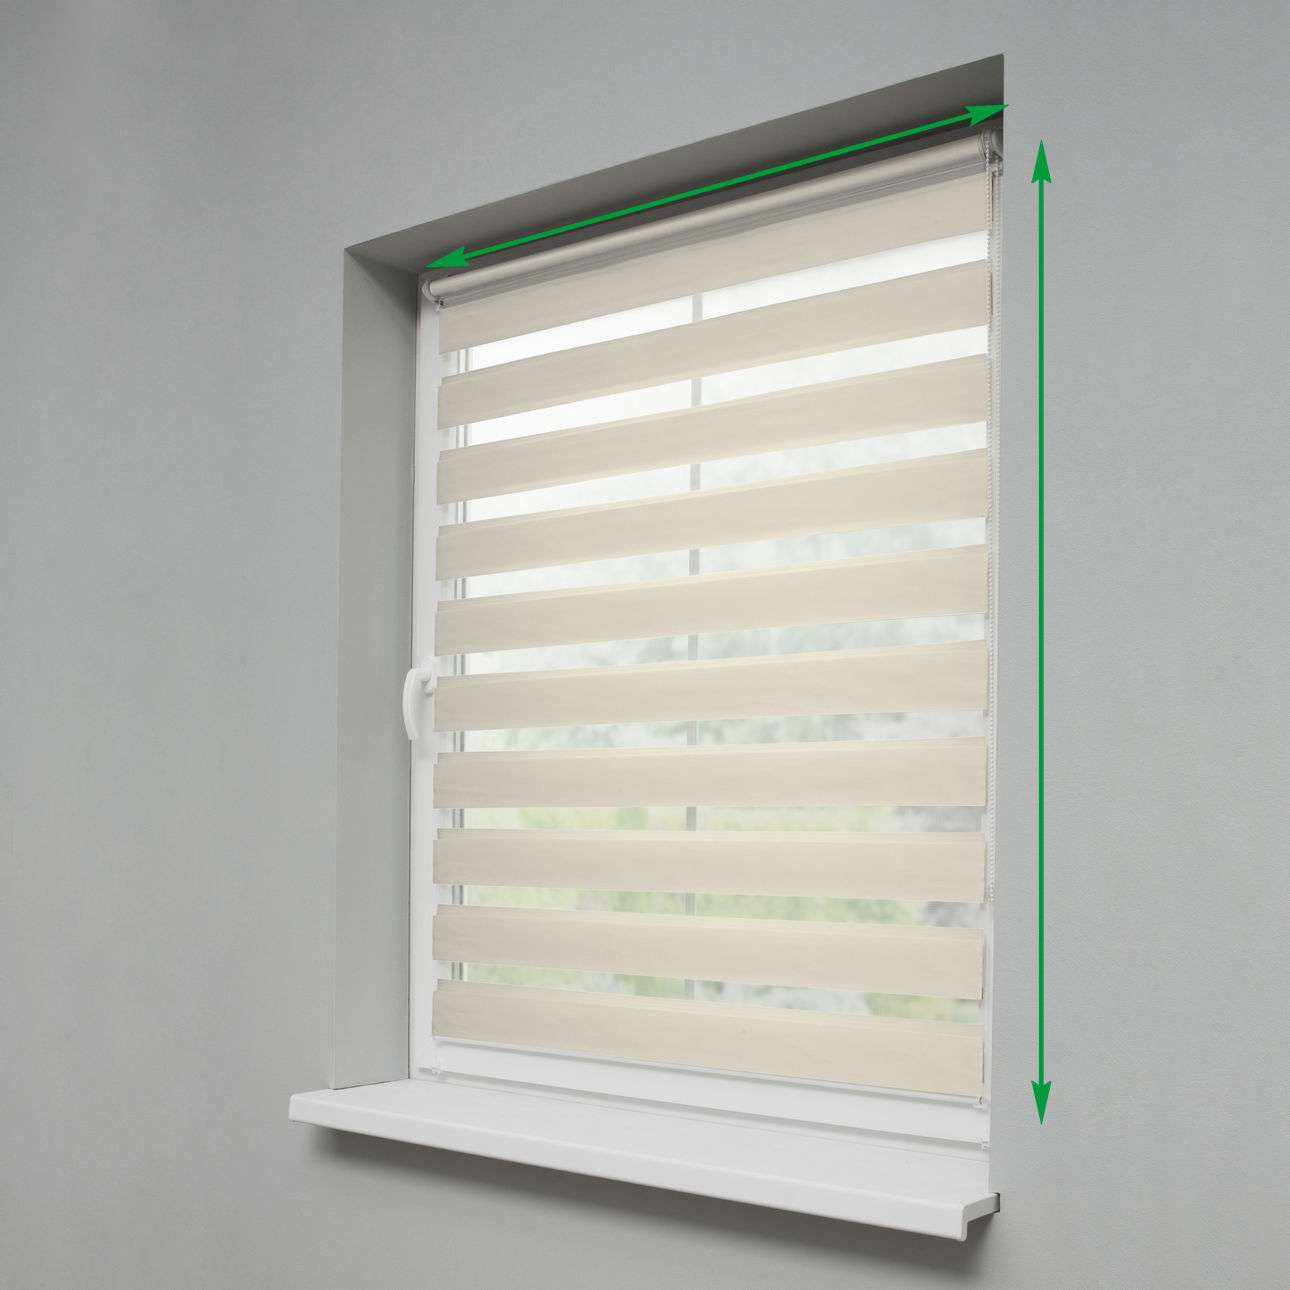 Mini Day & Night Roller Blind in collection Roller blinds Day & Night (Venetian blind), fabric: 0105